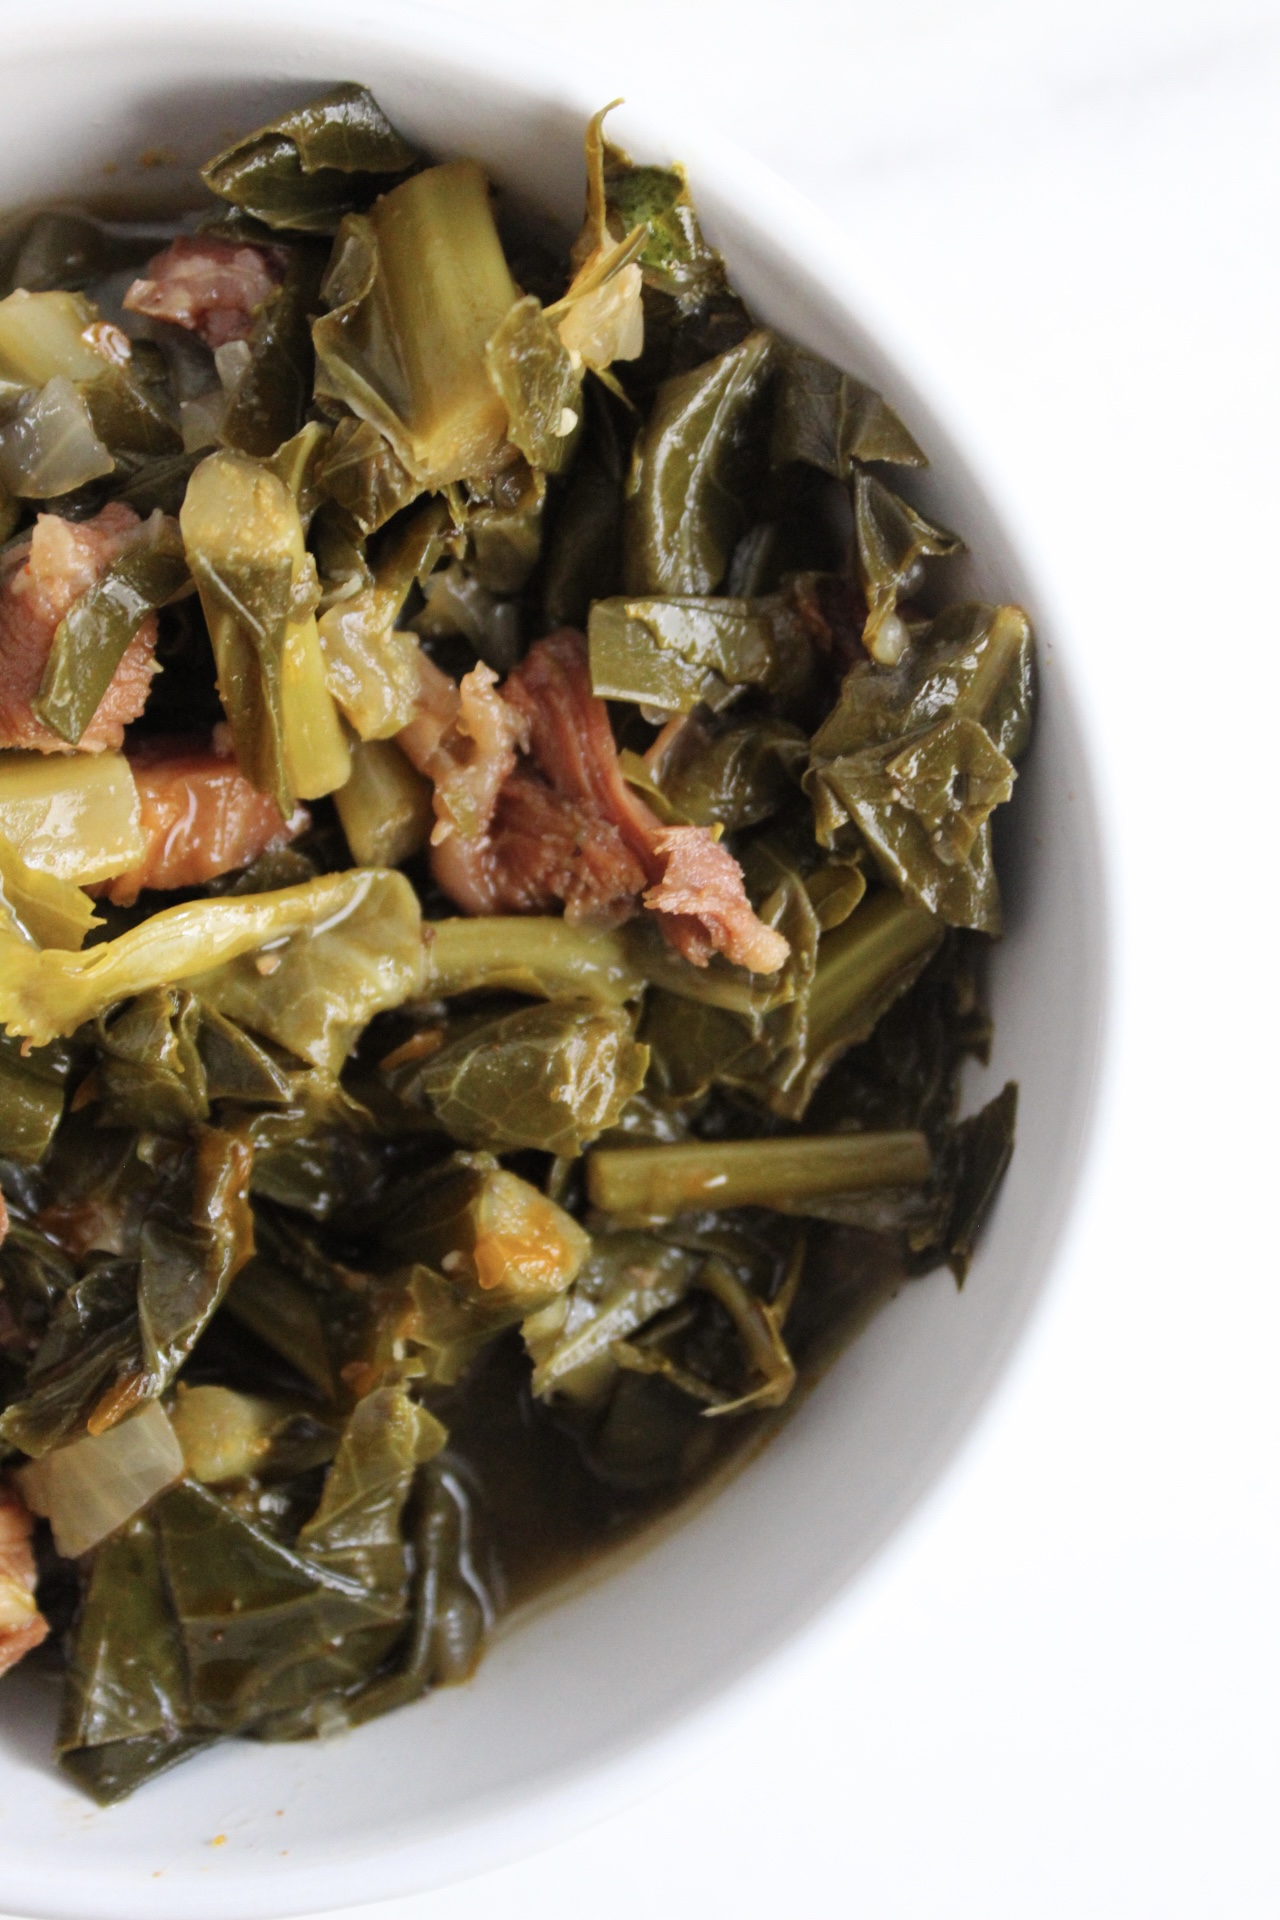 Bowl of Smoked Collard Greens